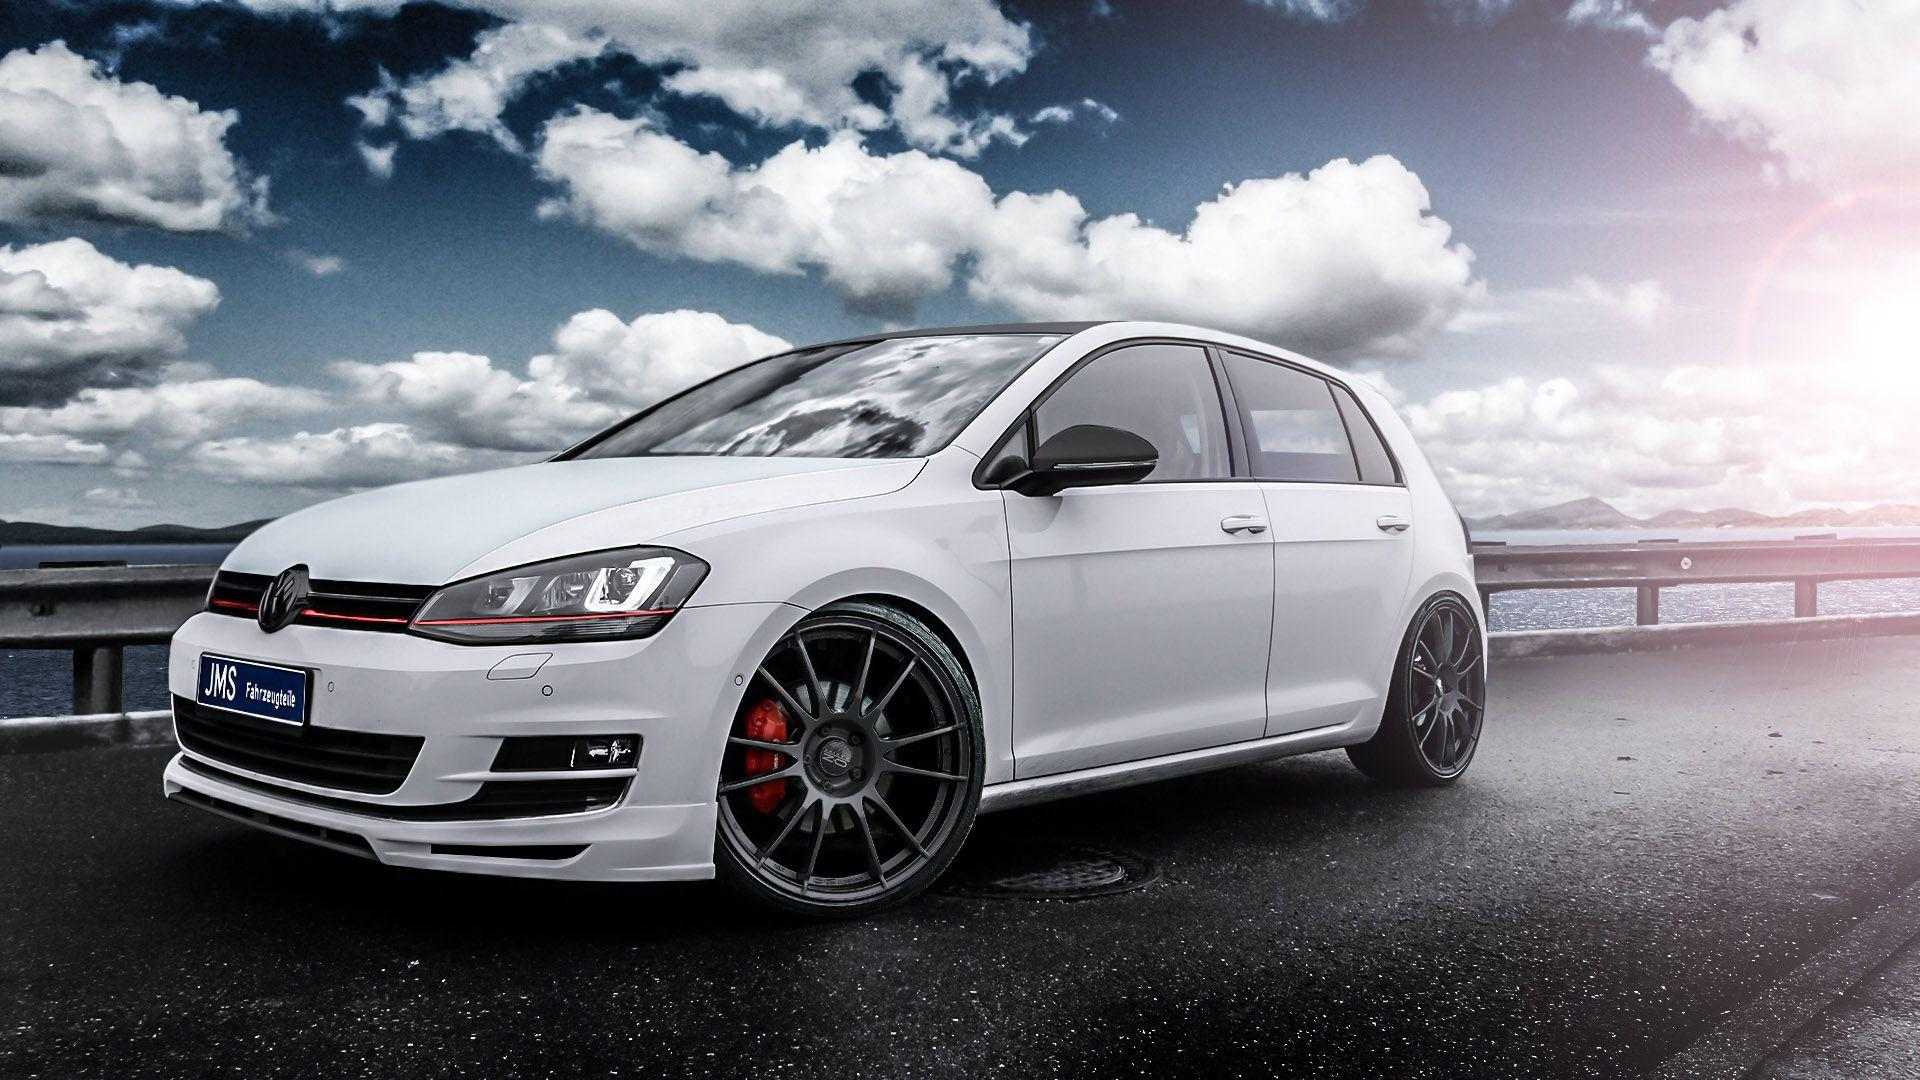 Volkswagen Golf MK7 Tuned By JMS - VW GTI Club